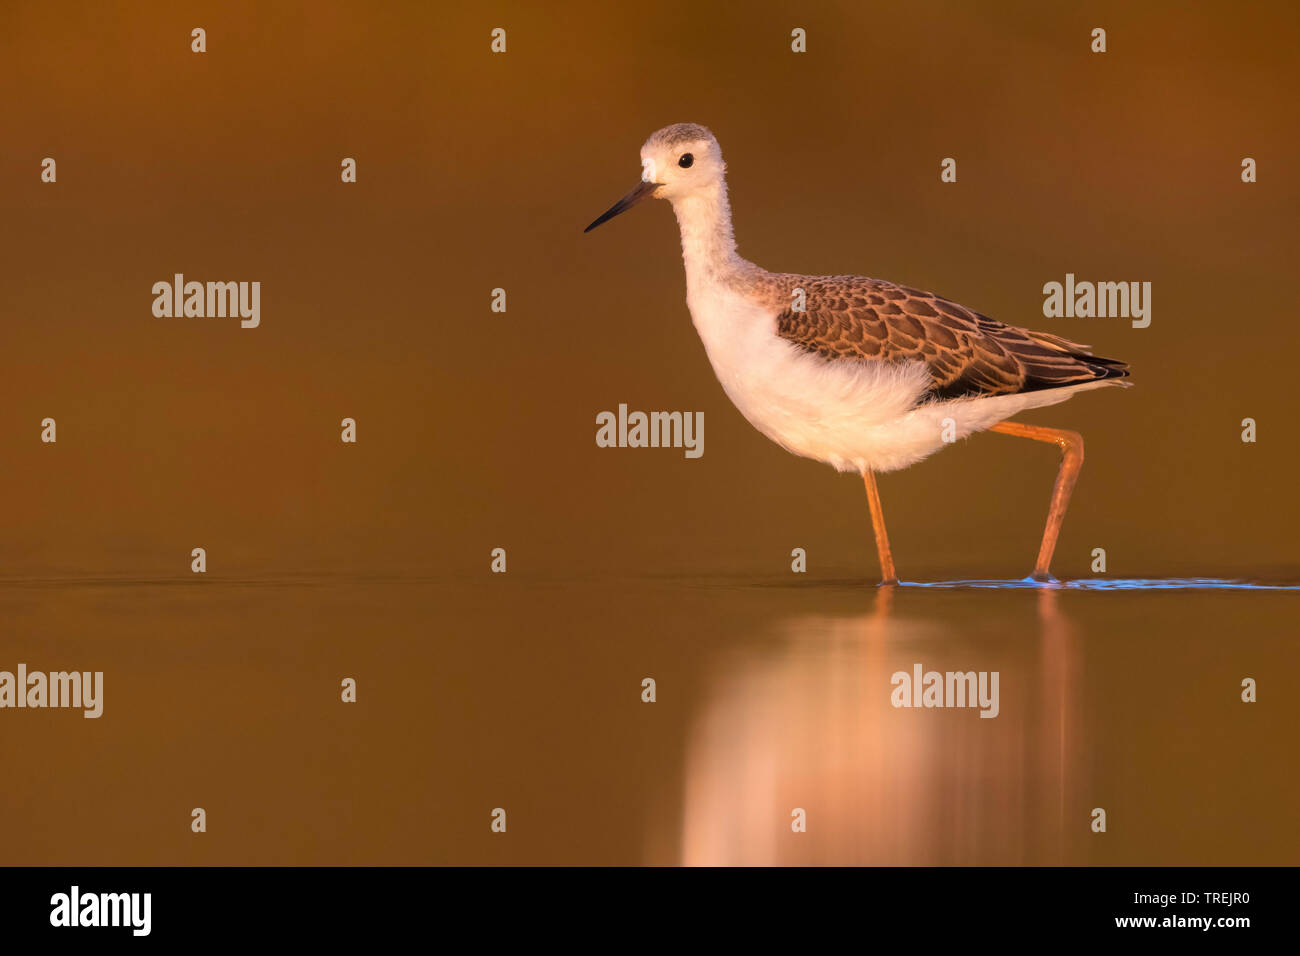 black-winged stilt (Himantopus himantopus), young bird wading in shallow water, Italy Stock Photo